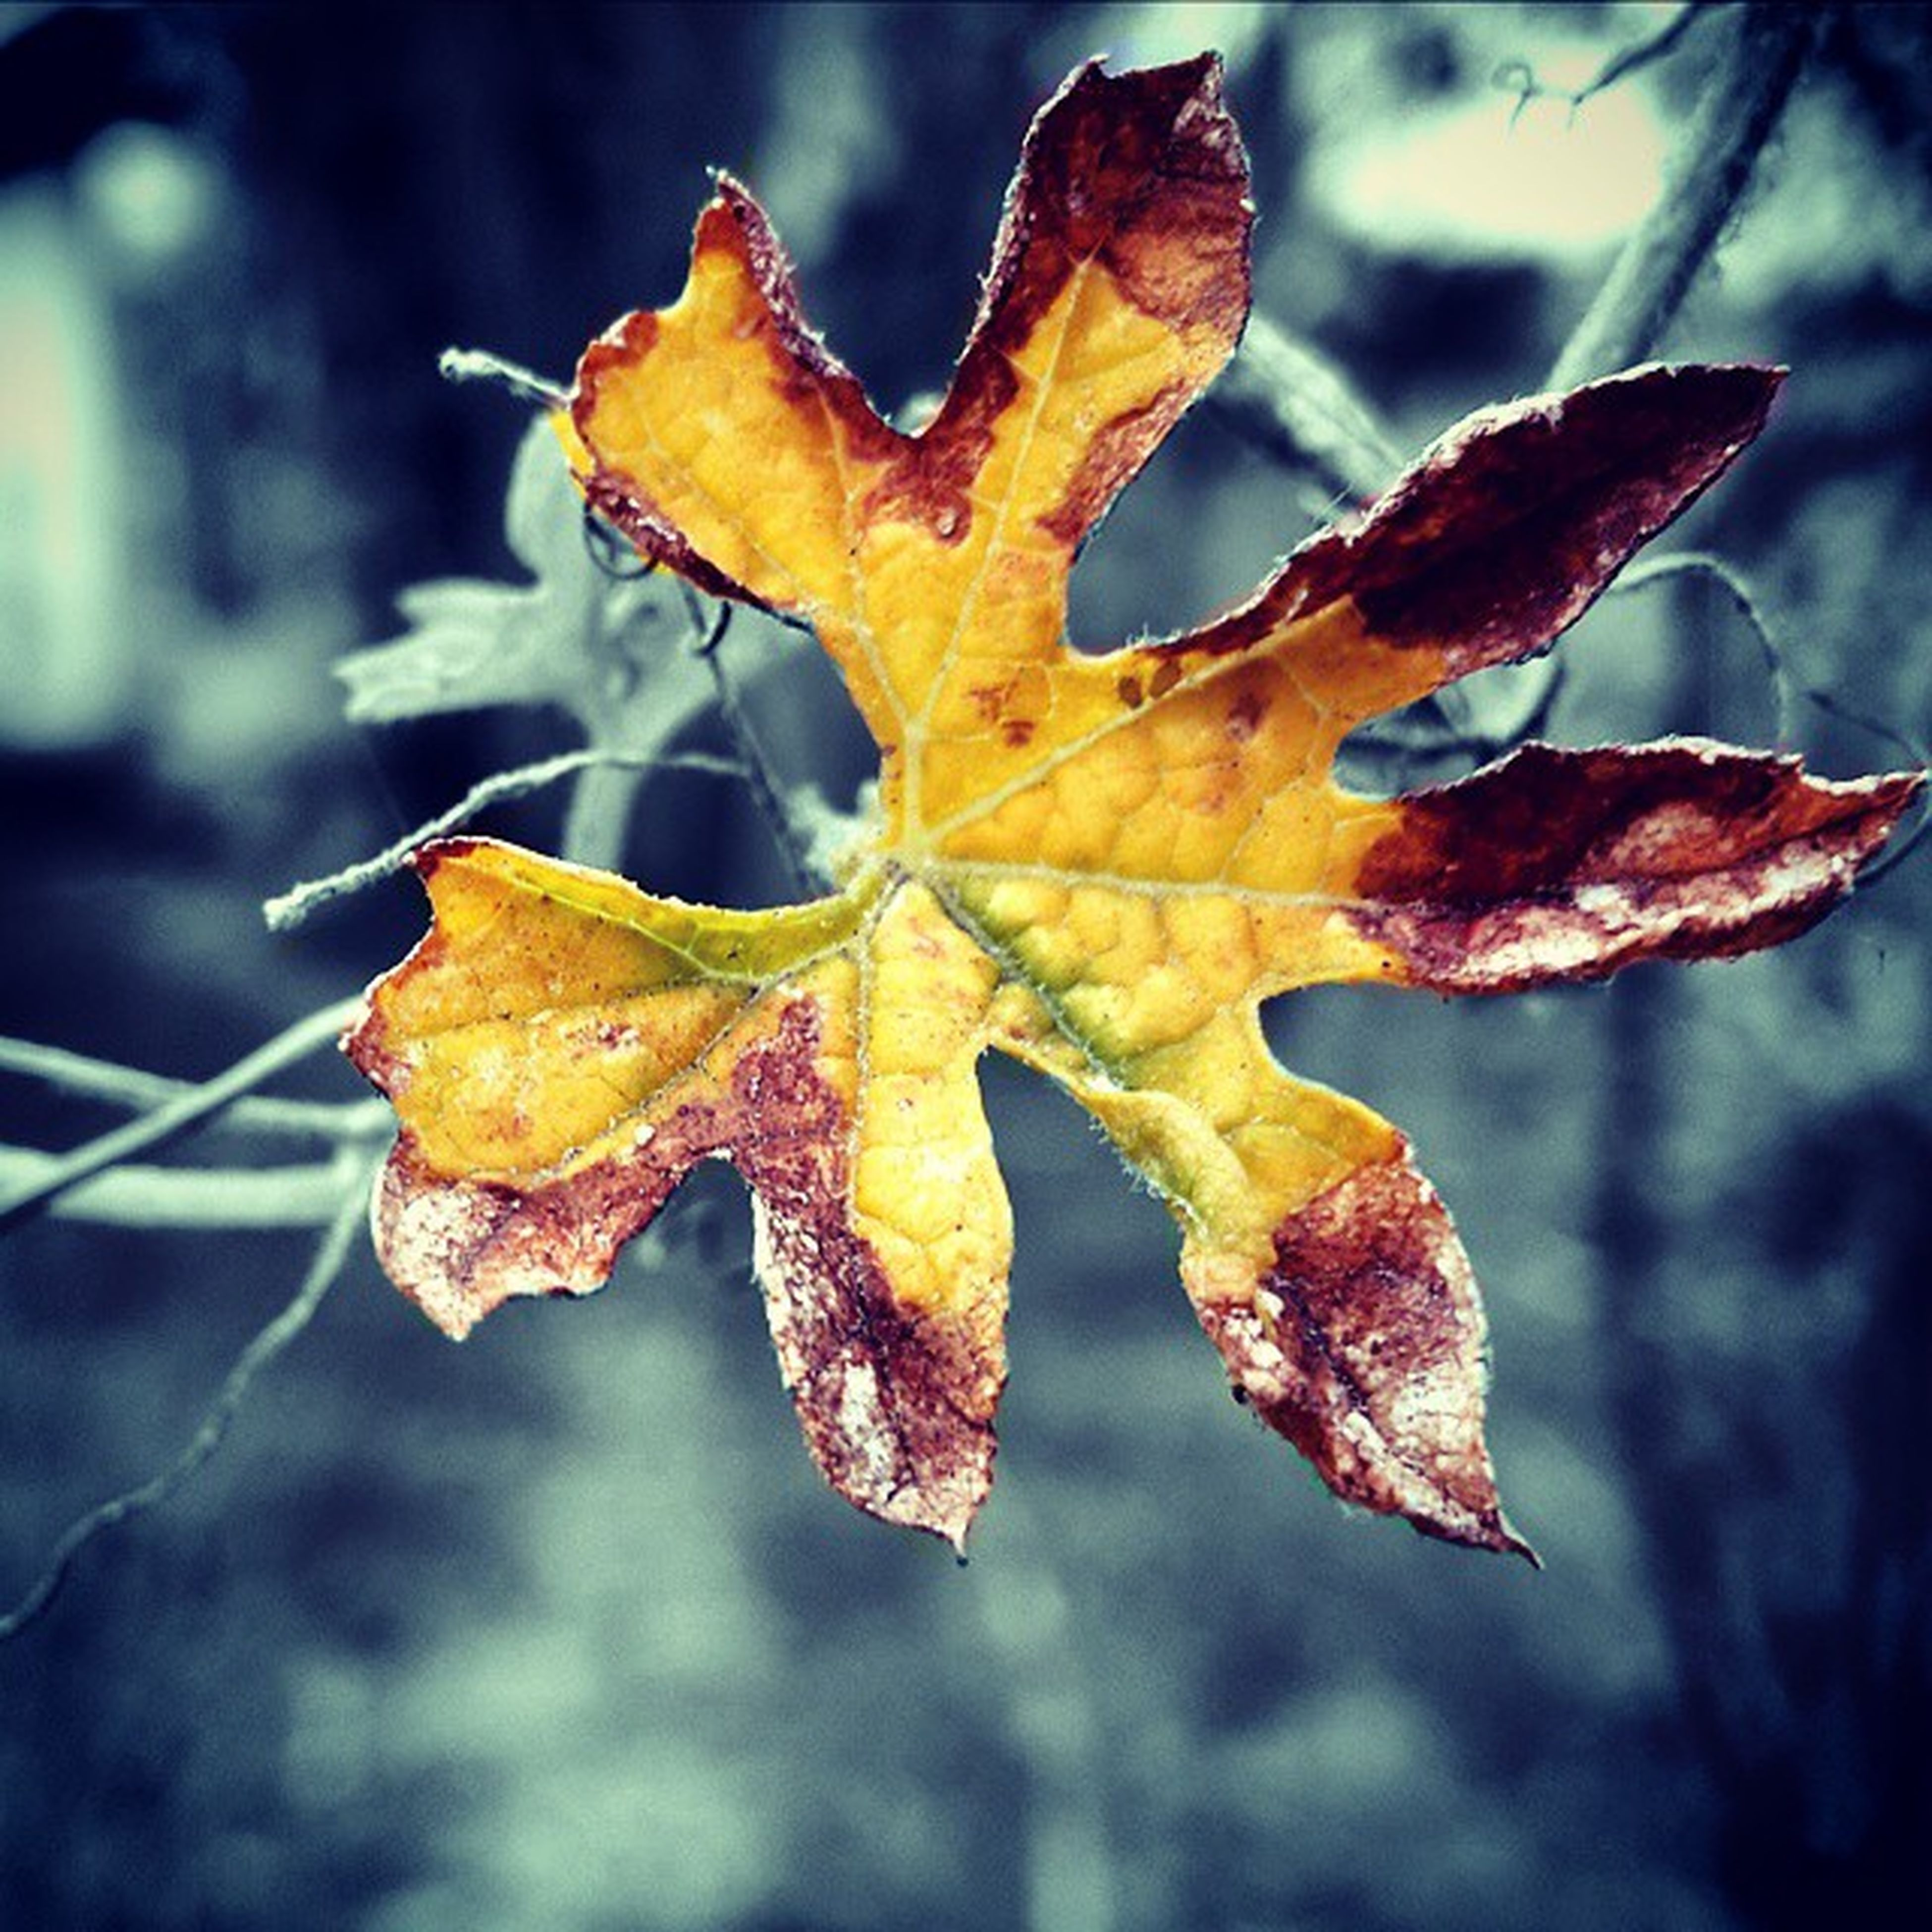 autumn, change, leaf, season, maple leaf, close-up, leaf vein, dry, focus on foreground, leaves, natural pattern, orange color, nature, fragility, natural condition, beauty in nature, aging process, outdoors, yellow, day